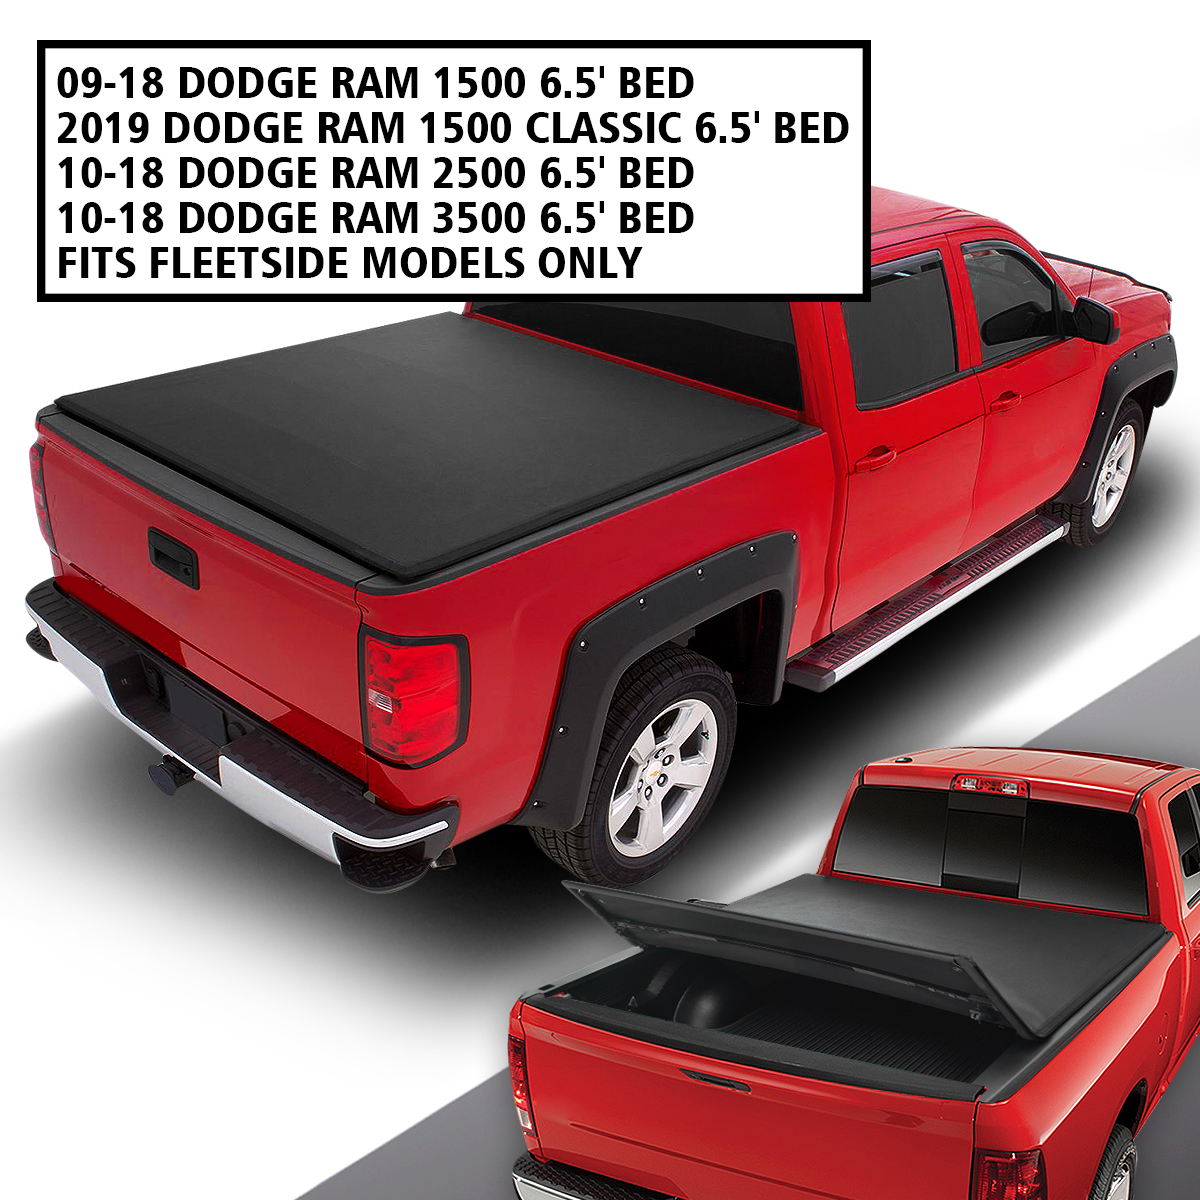 1998 1999 Dodge Ram 2500 Quad Cab 8ft Long Bed Waterproof Truck Cover